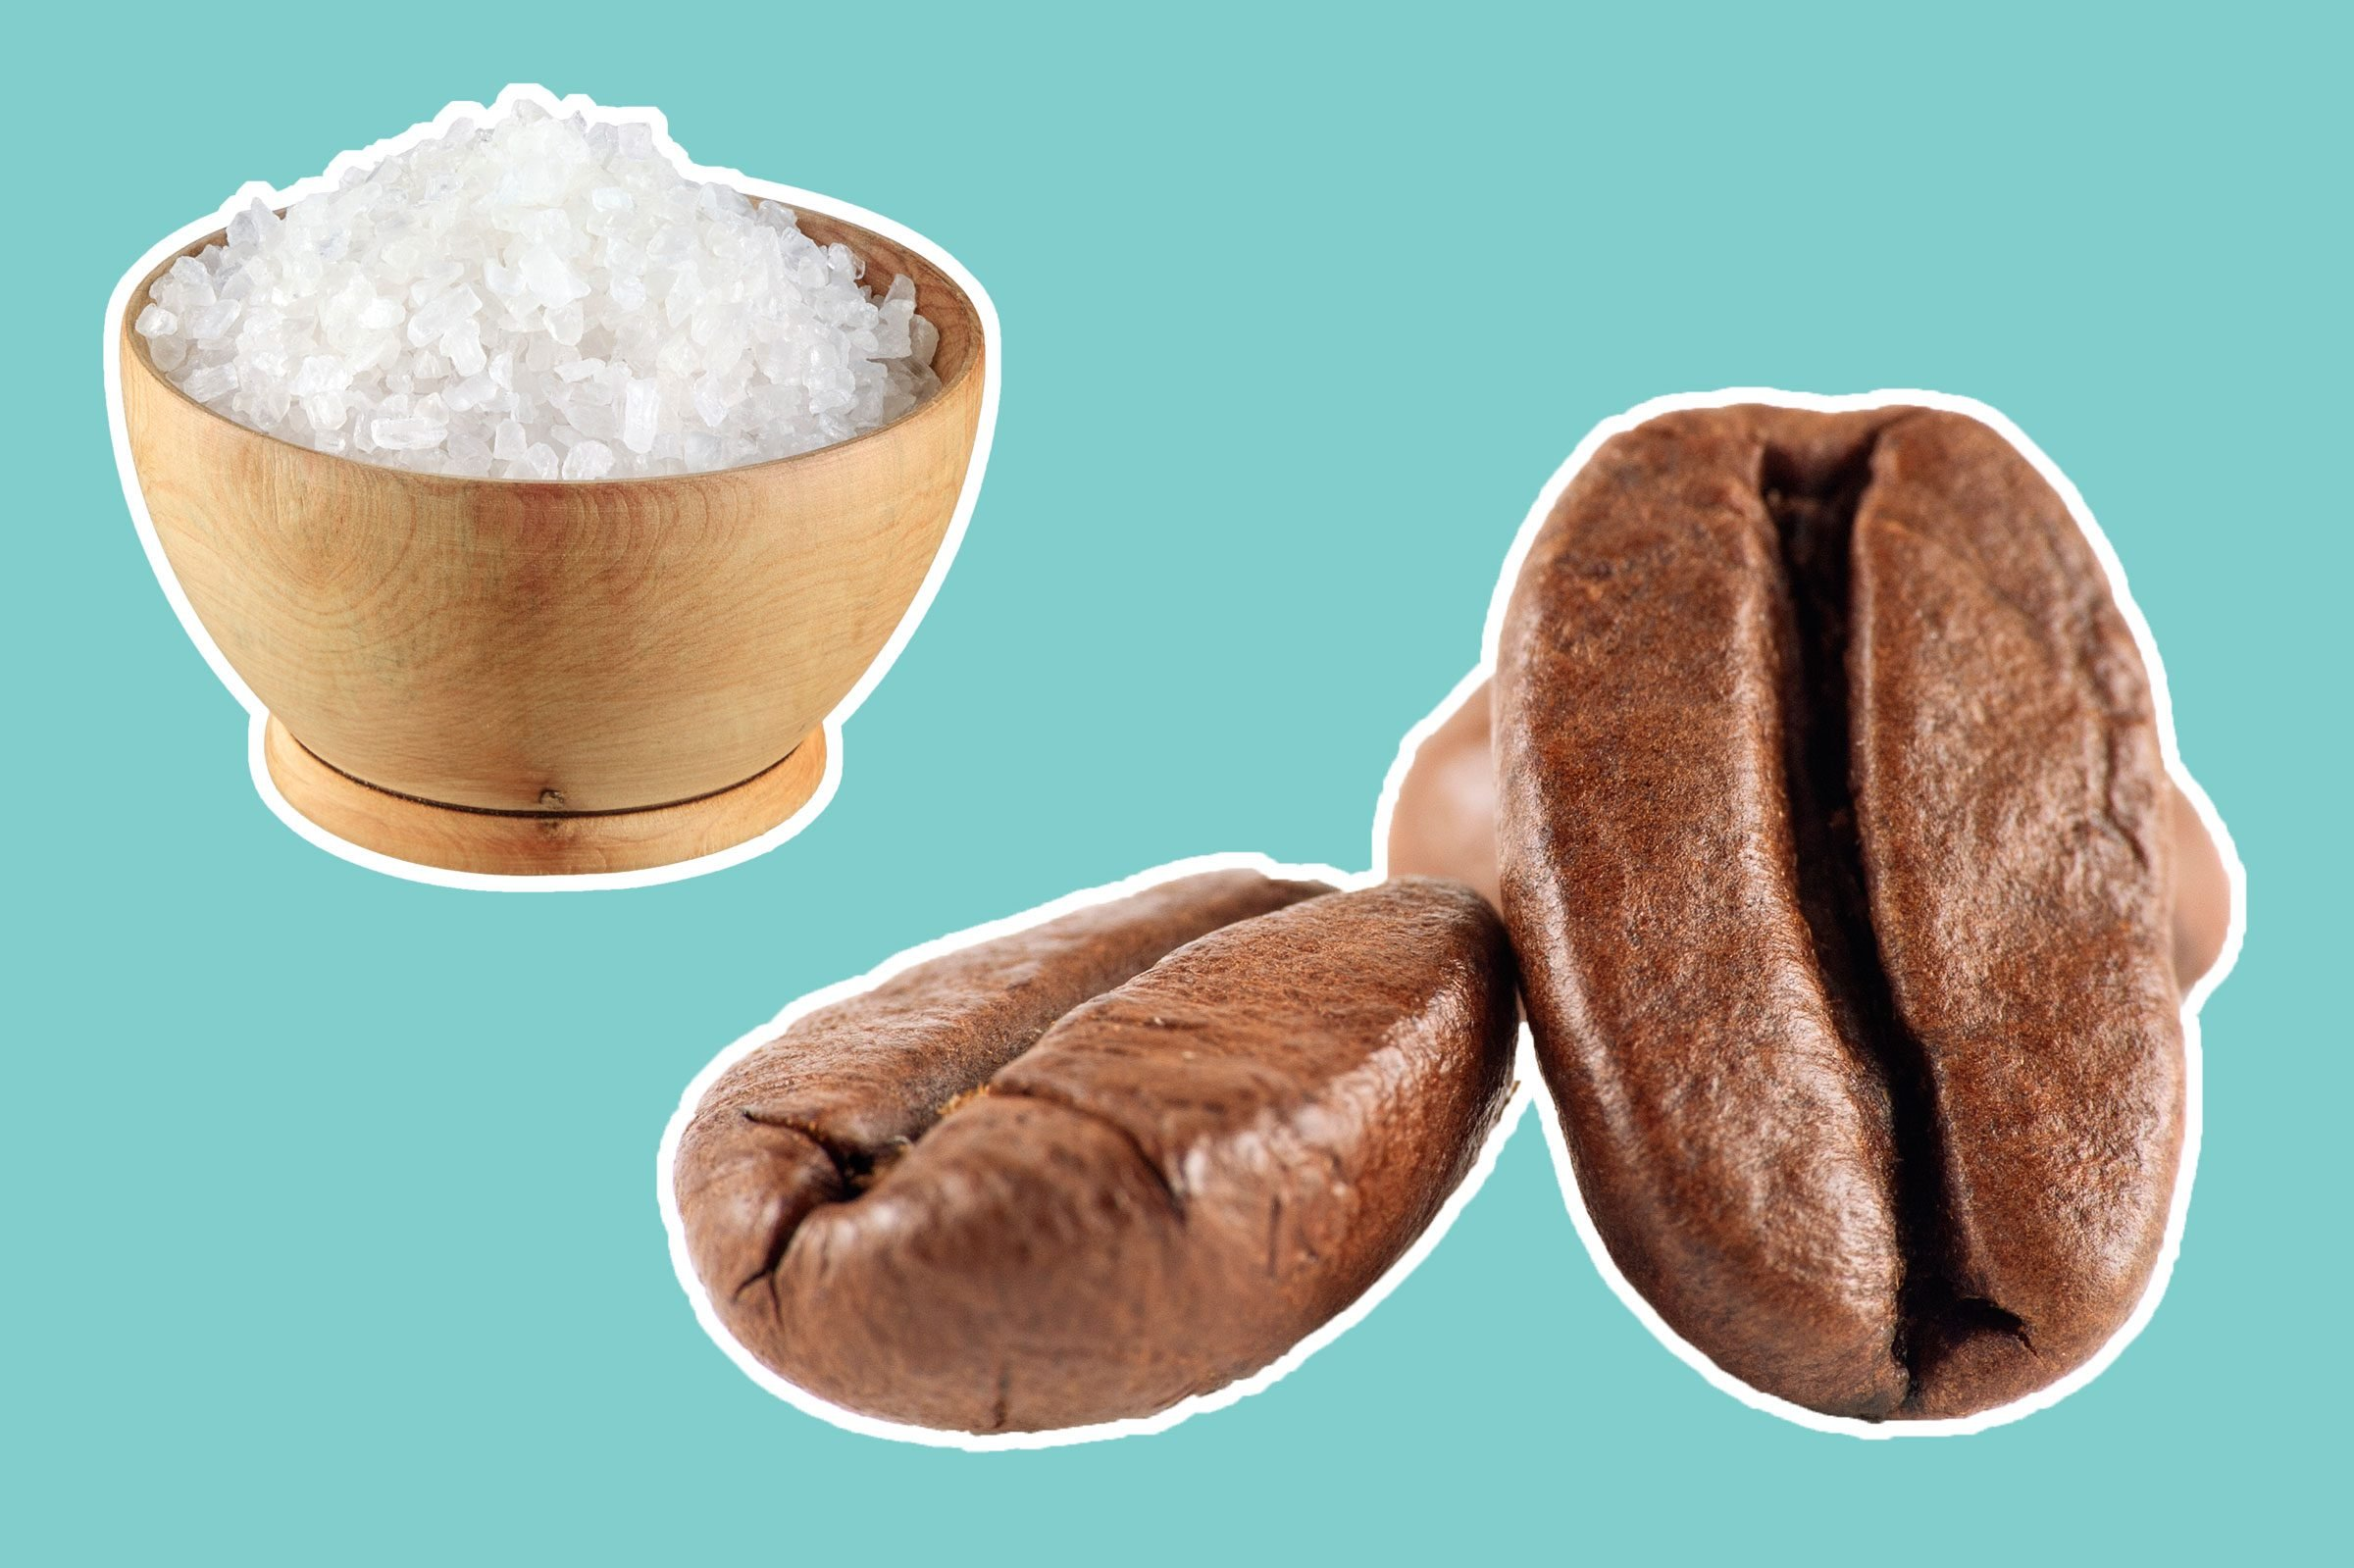 kosher salt in a bowl and coffee beans